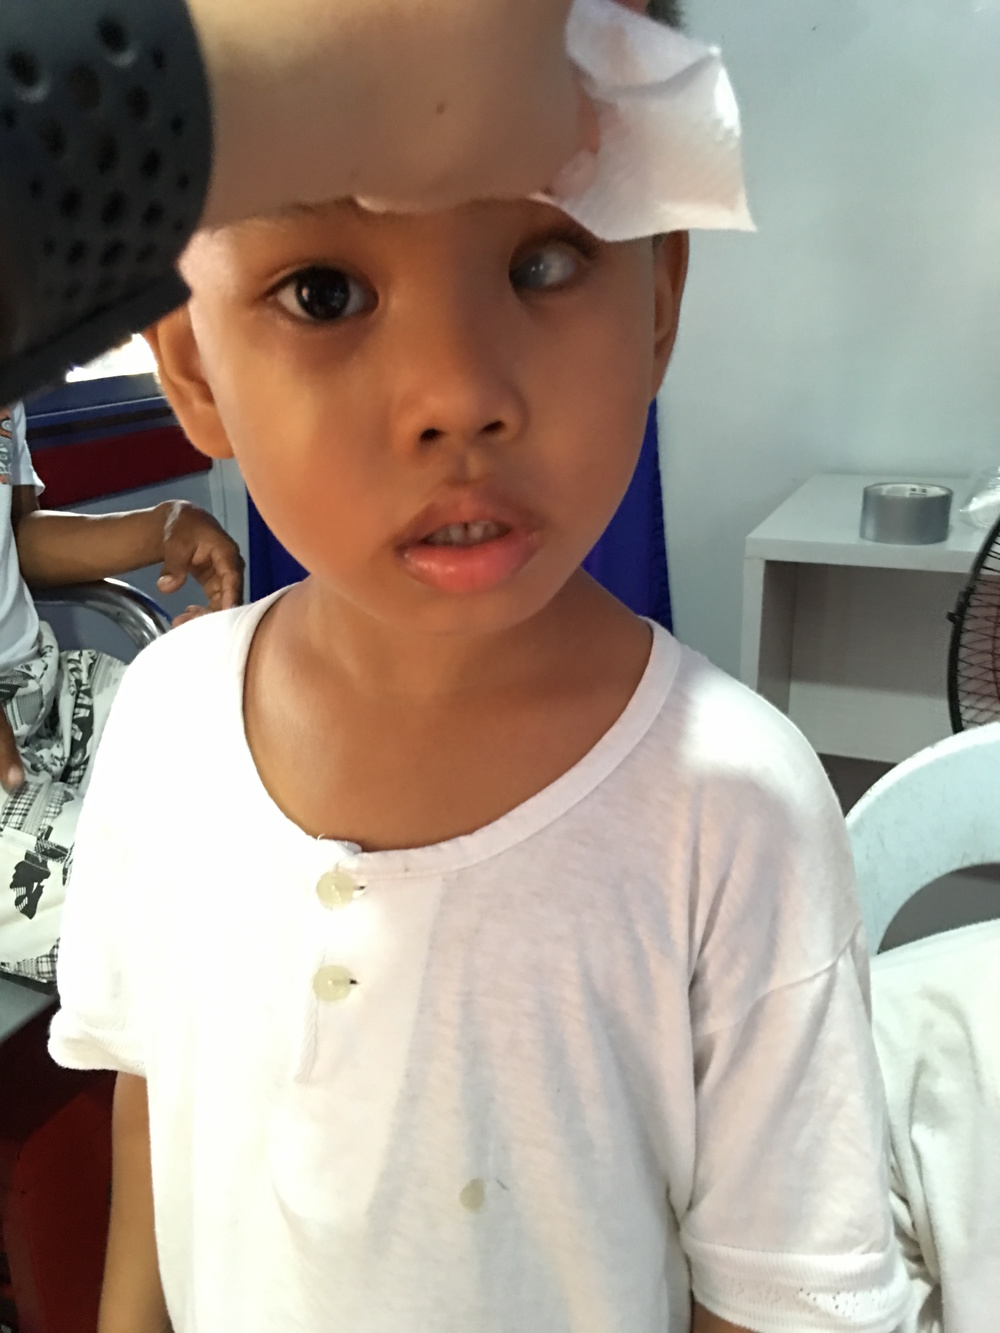 This 6-year-old boy has unfortunately gone blind in his left eye due to congenital glaucoma.